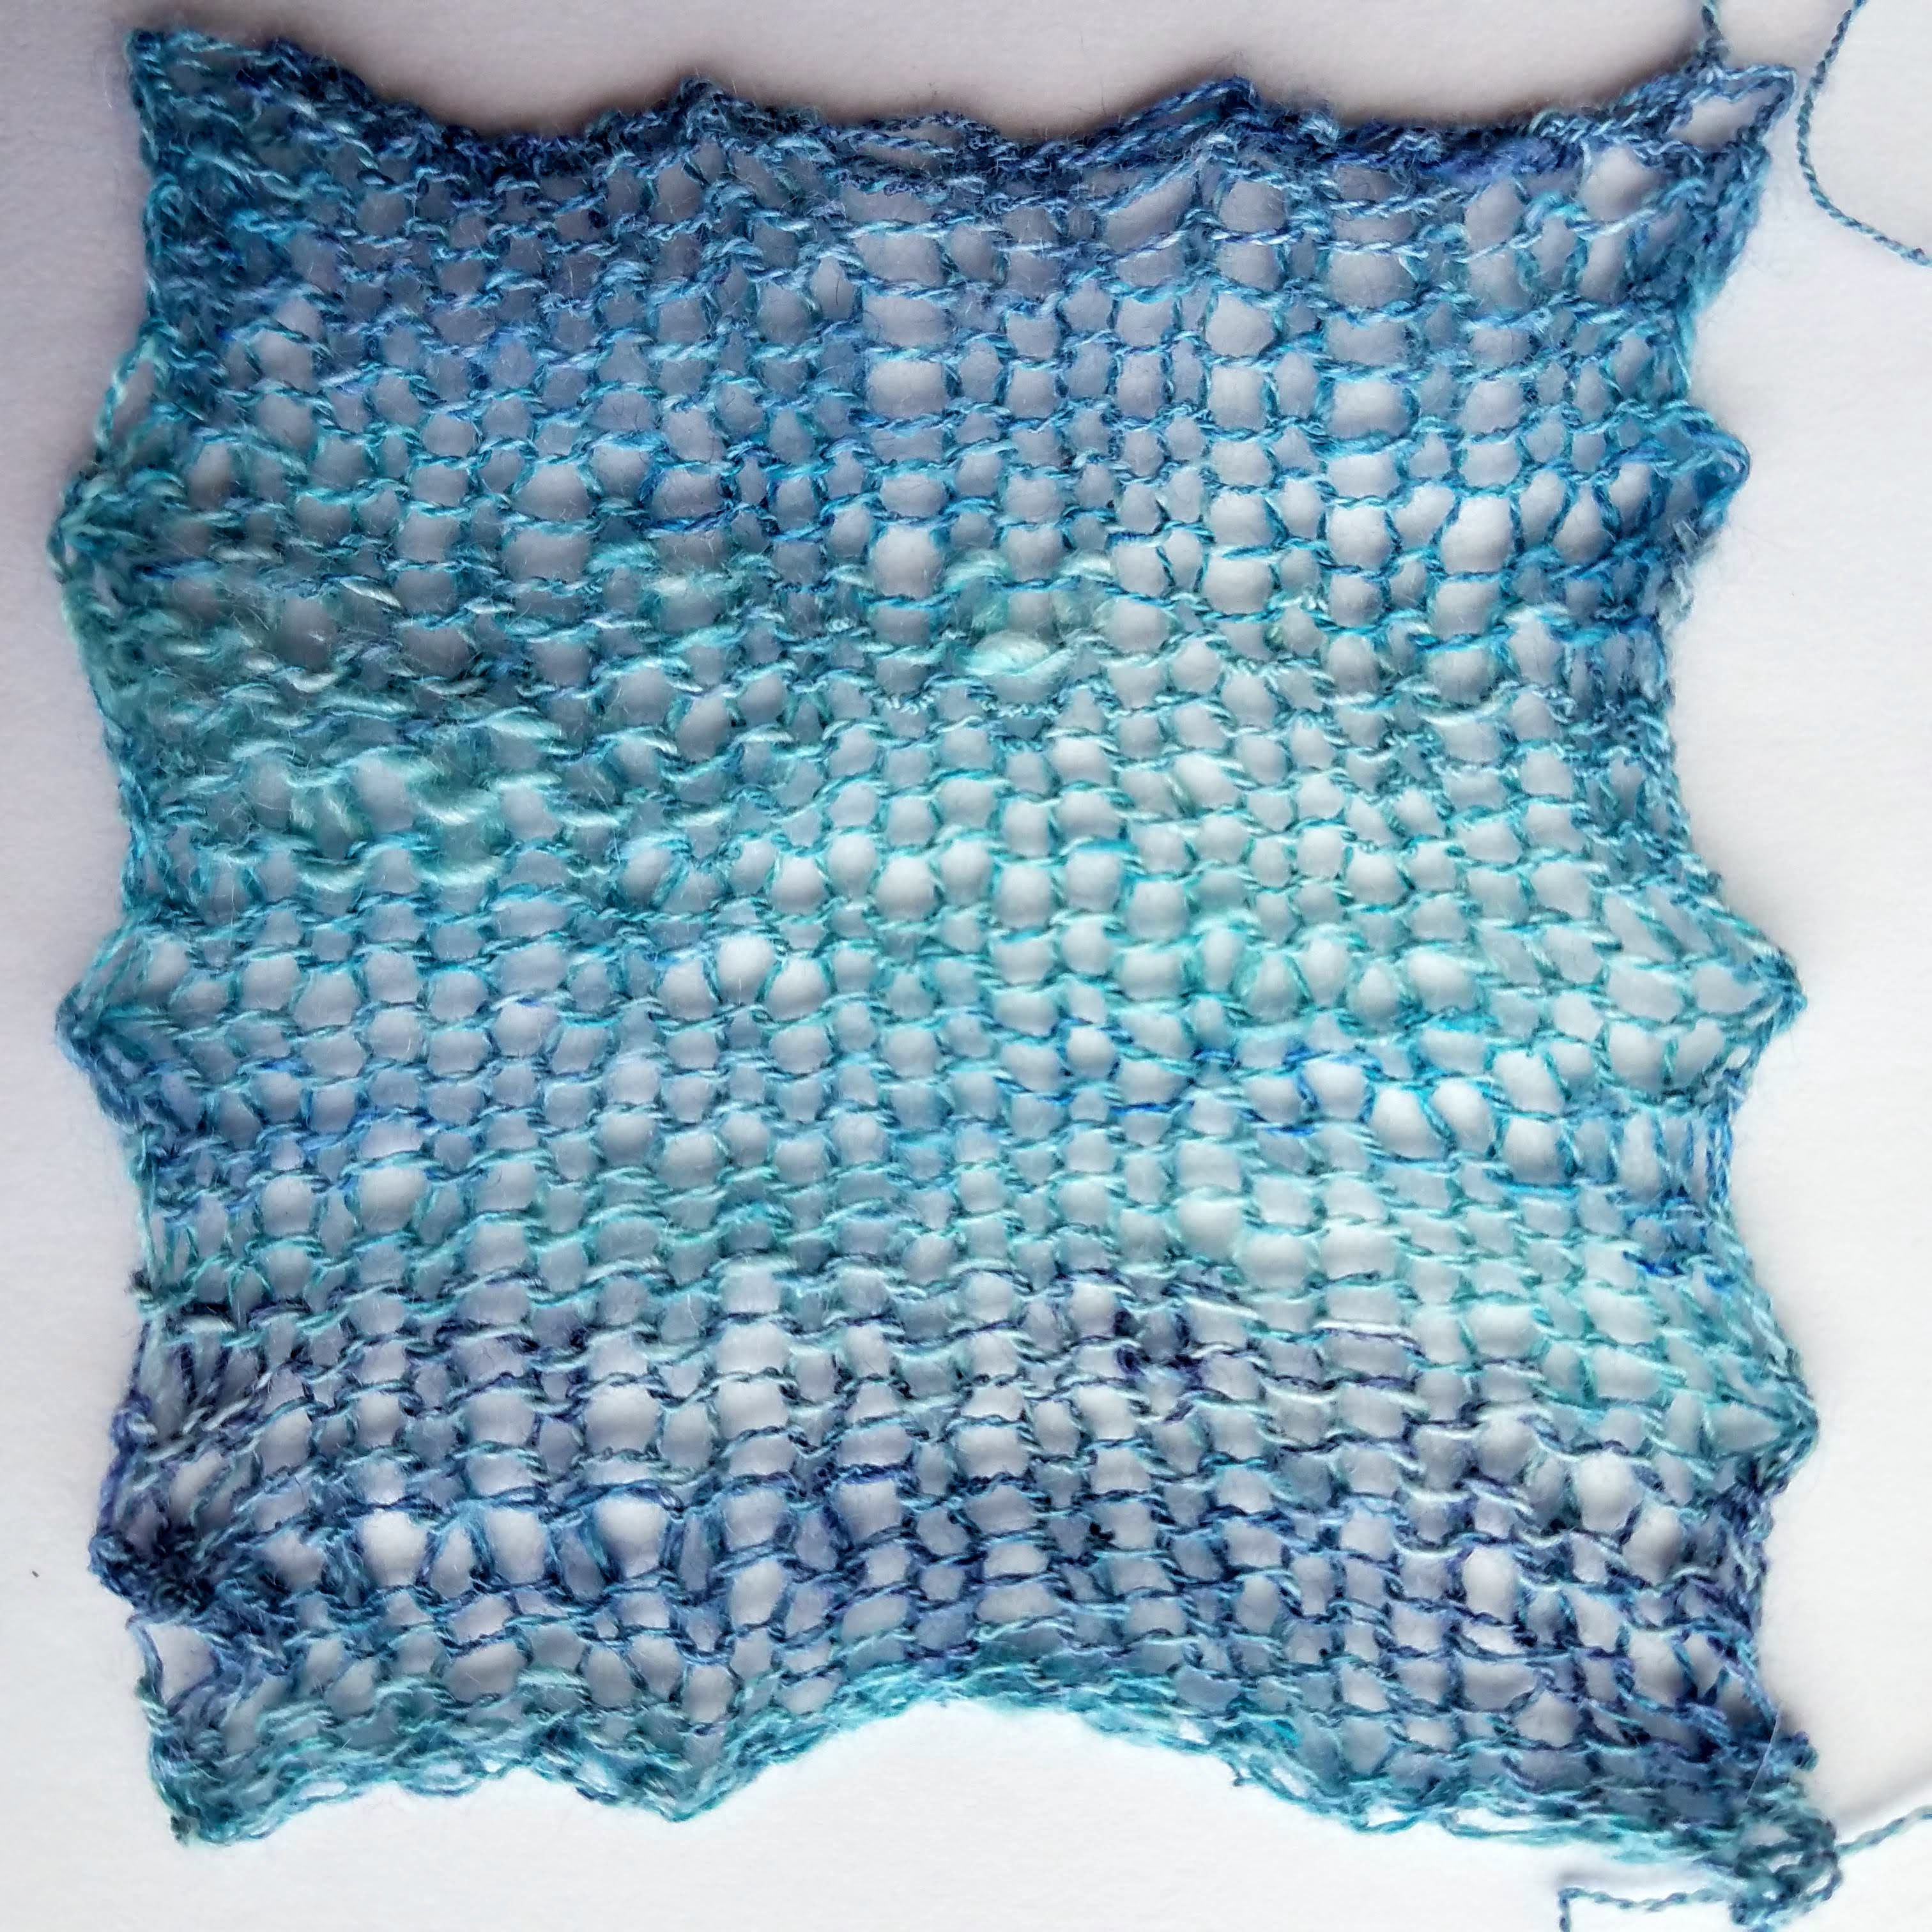 My Gauge Swatch for the Angelique Shawl by Corrine Walcher